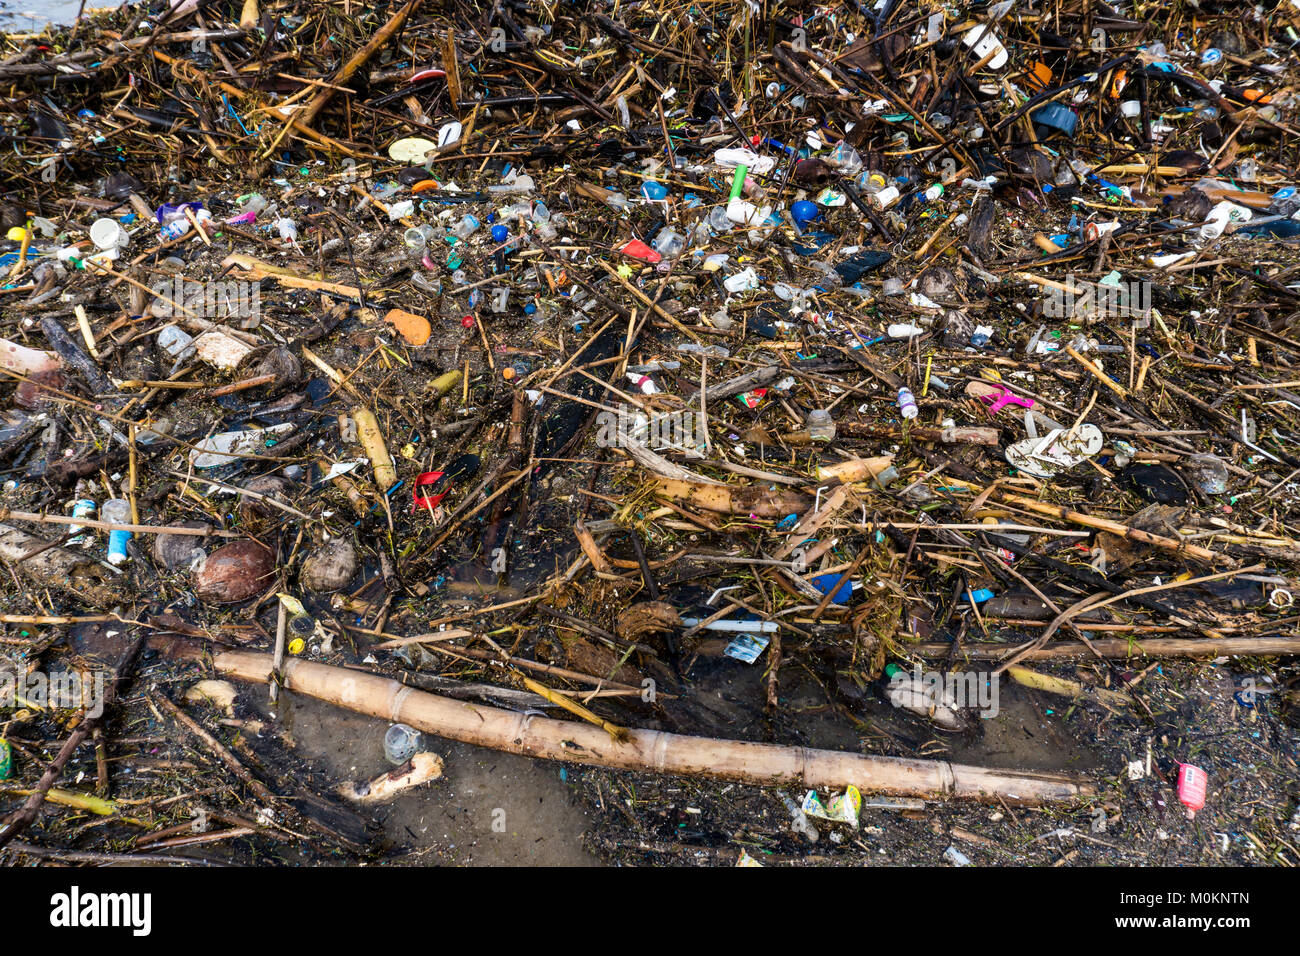 Rubbish and domestic waste polluting the beach. Stock Photo